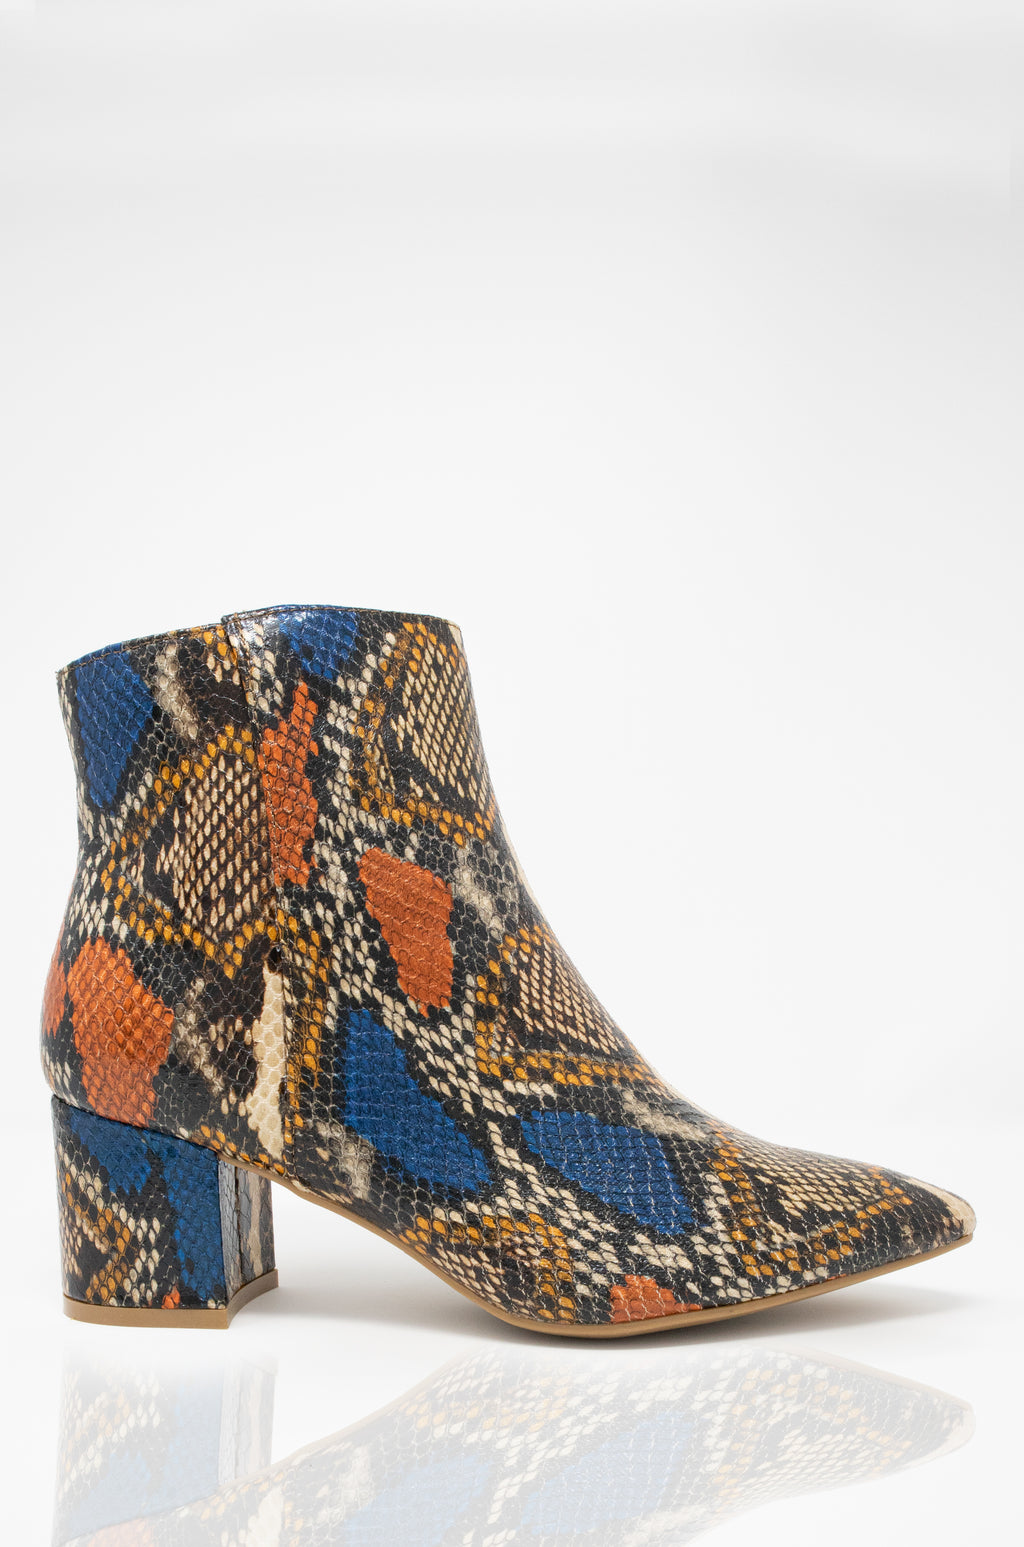 Keep In Touch -  Multi Snake Block Heel Ankle Booties